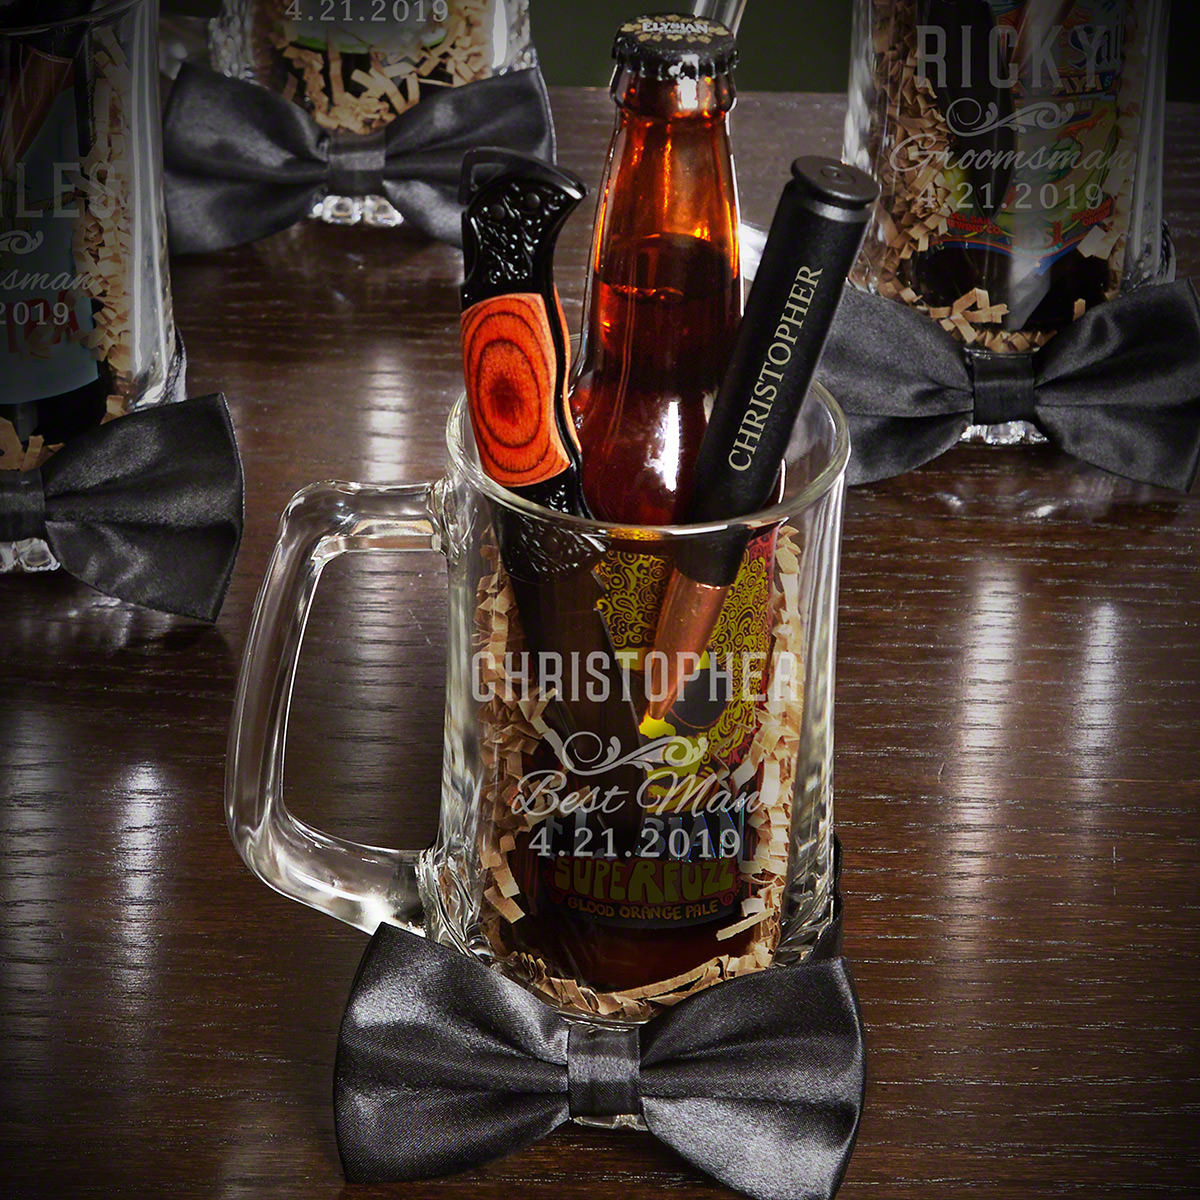 You've already picked out the perfect engagement ring. Now it's time to find the perfect groomsman gift. This Classic Groomsman beer mug gift set has everything your groomsman will need. They'll get a keen-edged lockback knife for everyday situation #mug